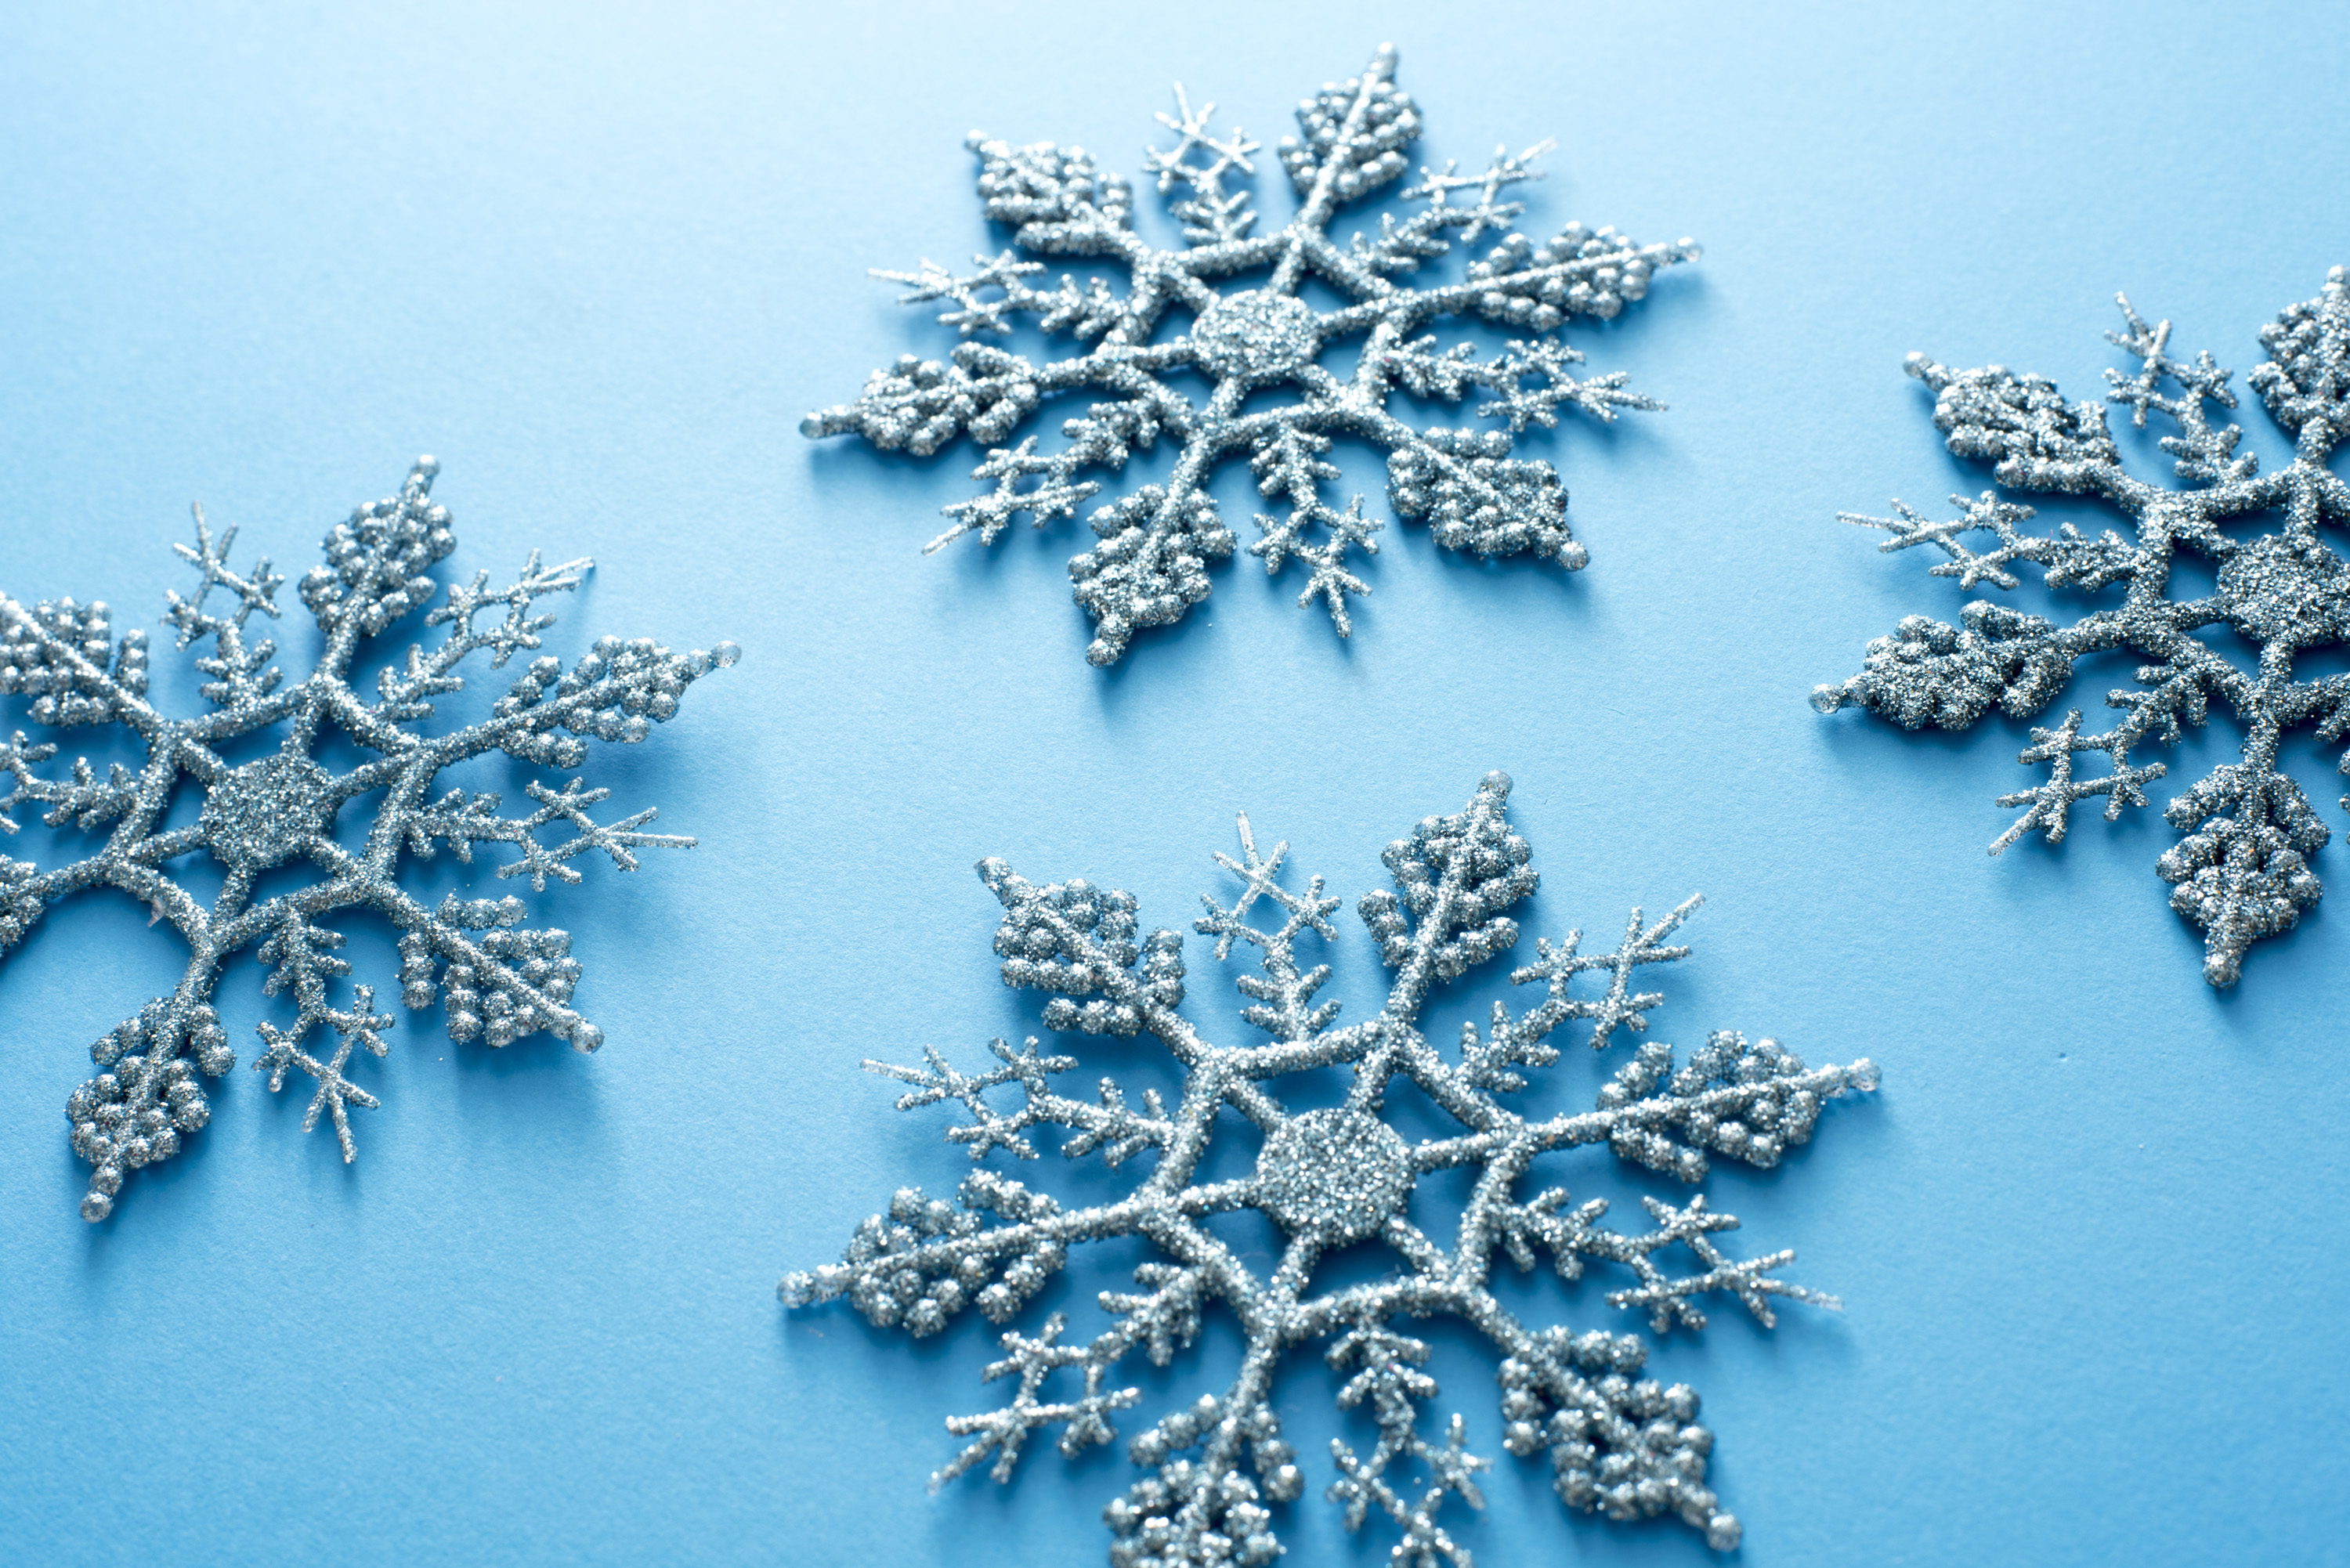 Photo Of Ornamental Blue Christmas Snowflakes Free